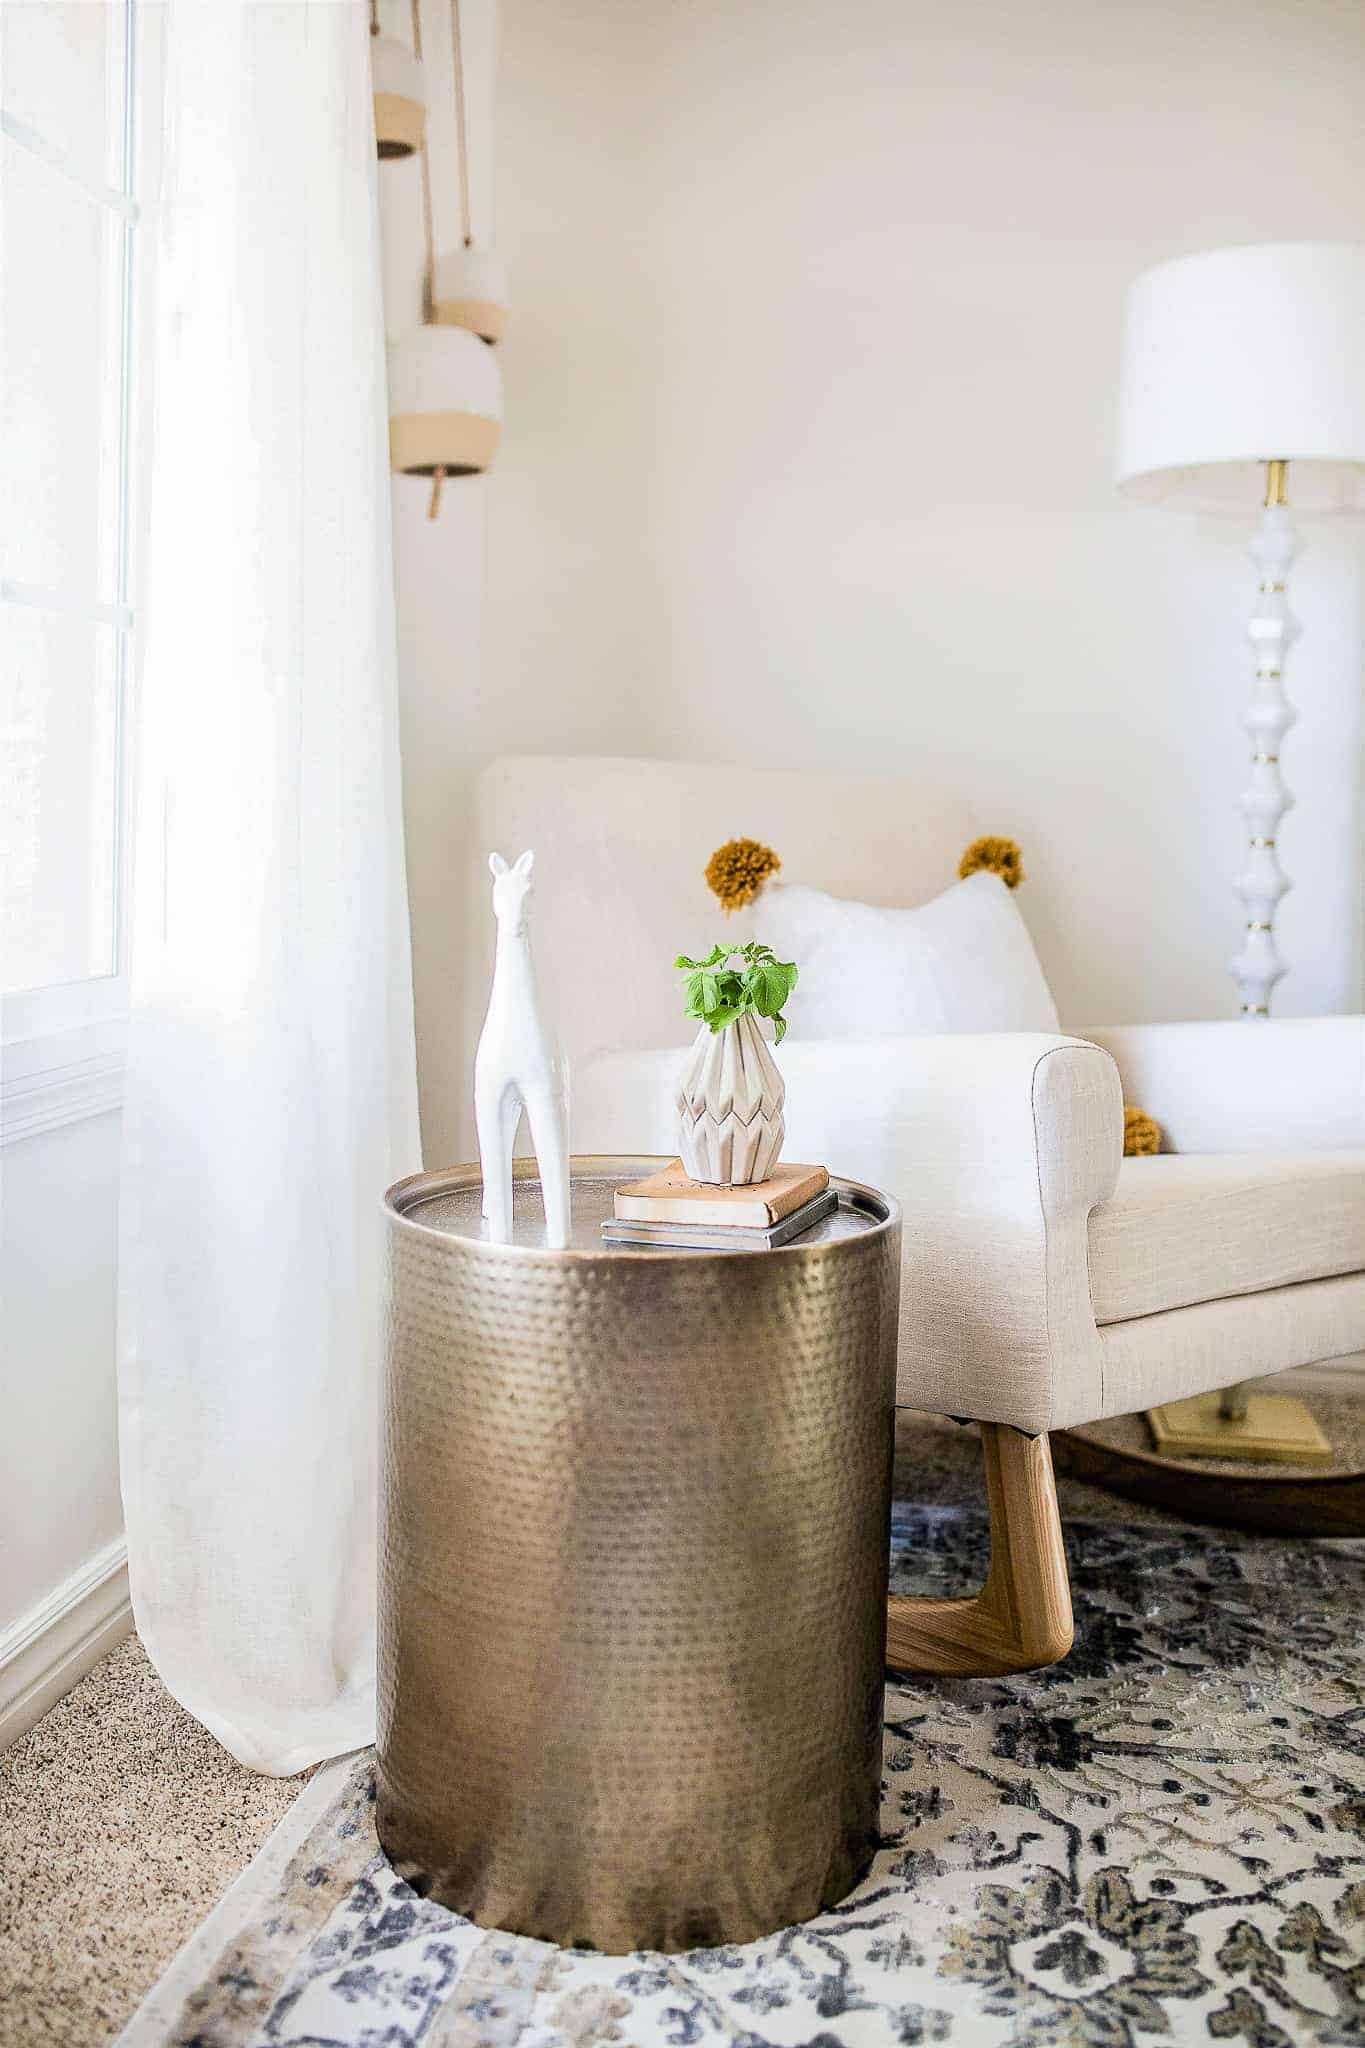 round metal side table next to an upholstered rocking chair with pom pom pillow